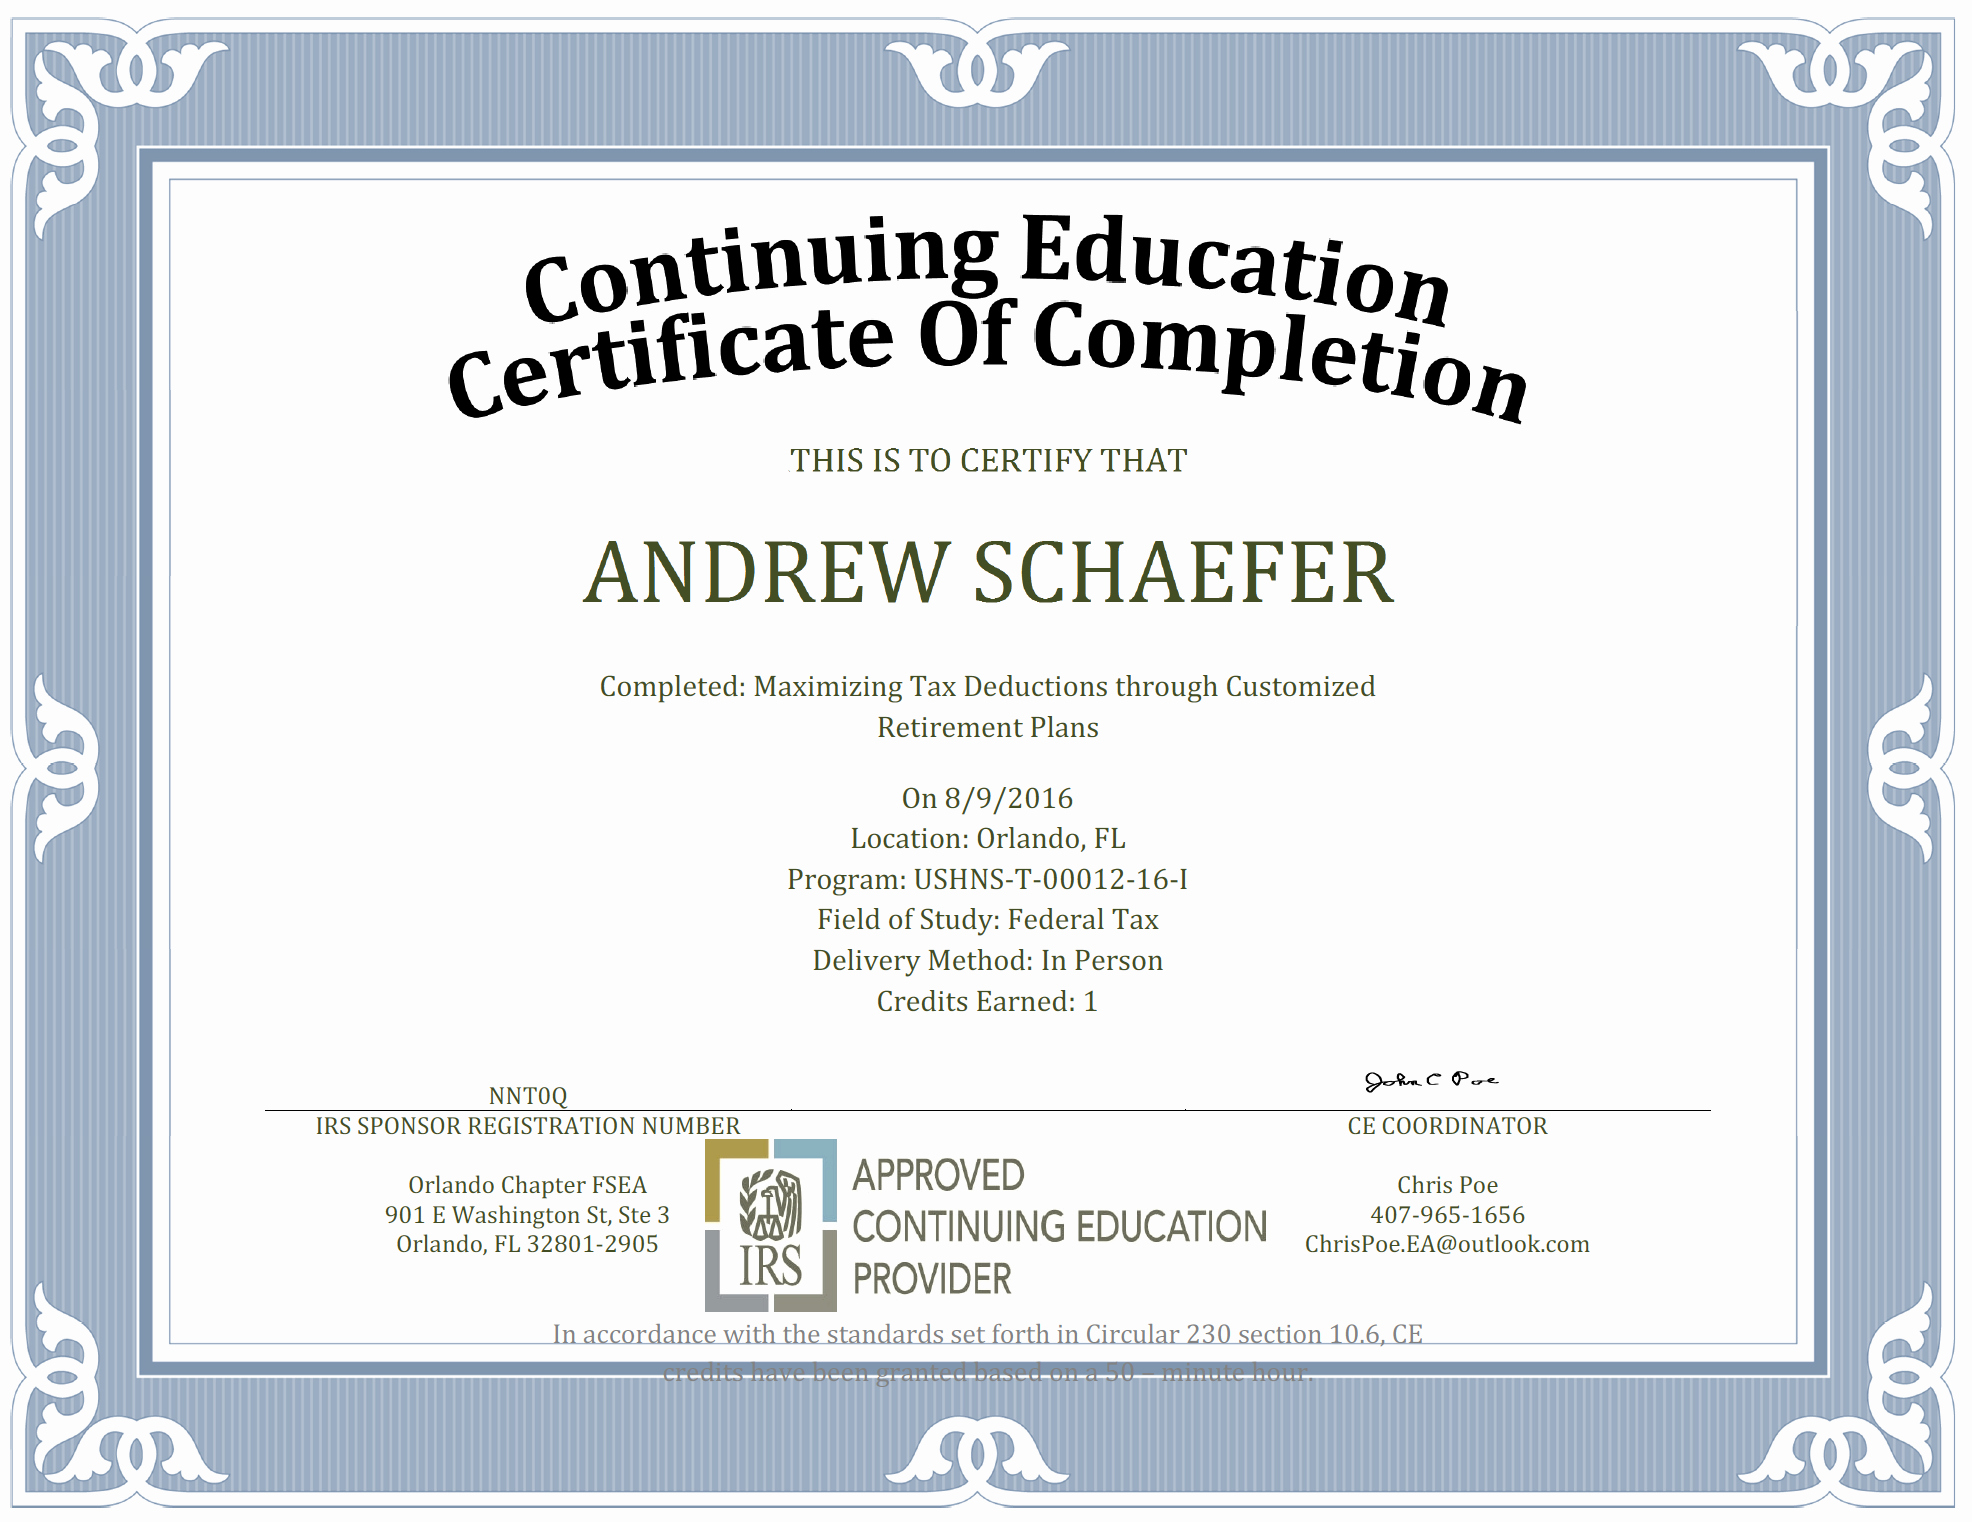 Continuing Education Certificate Template Best Of Continuing Education – orlando Chapter Fsea